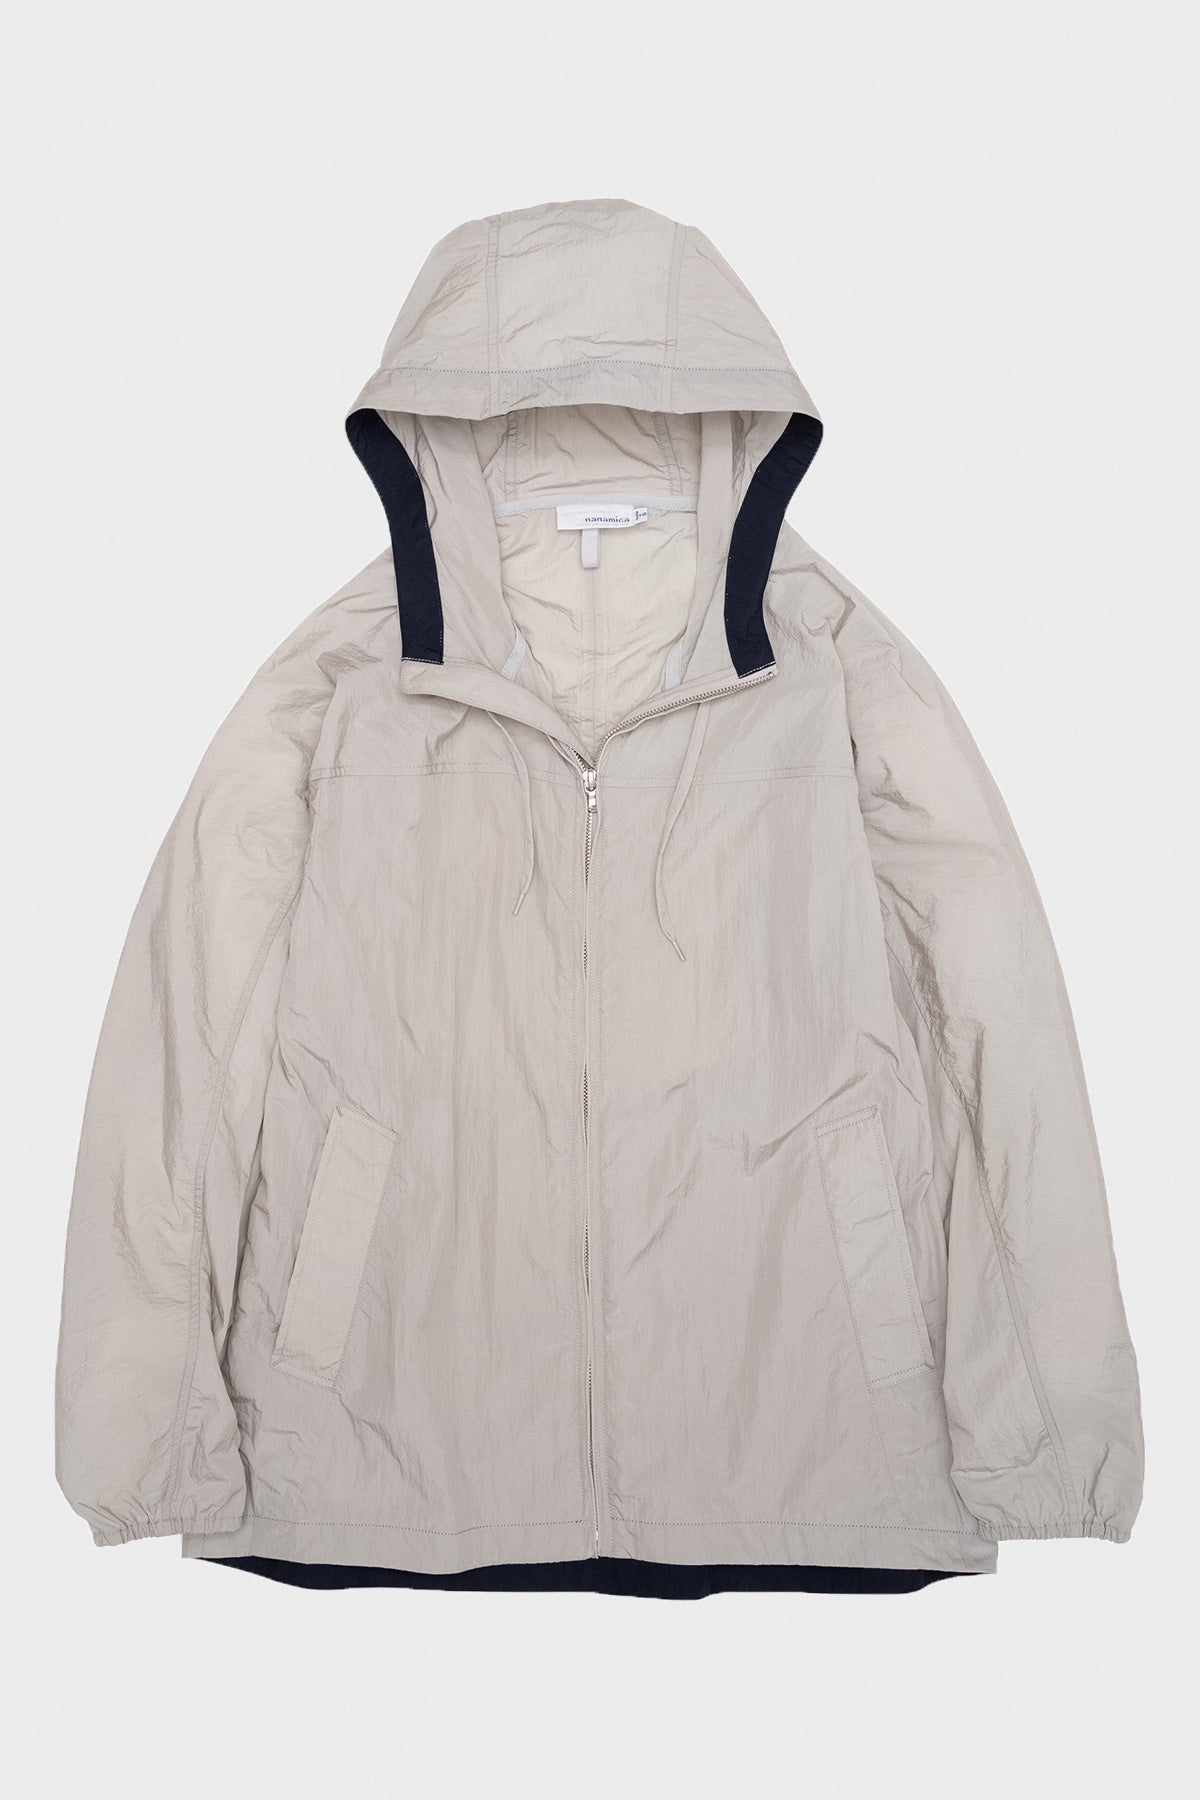 nanamica - Cruiser Jacket - Light Grey - Canoe Club